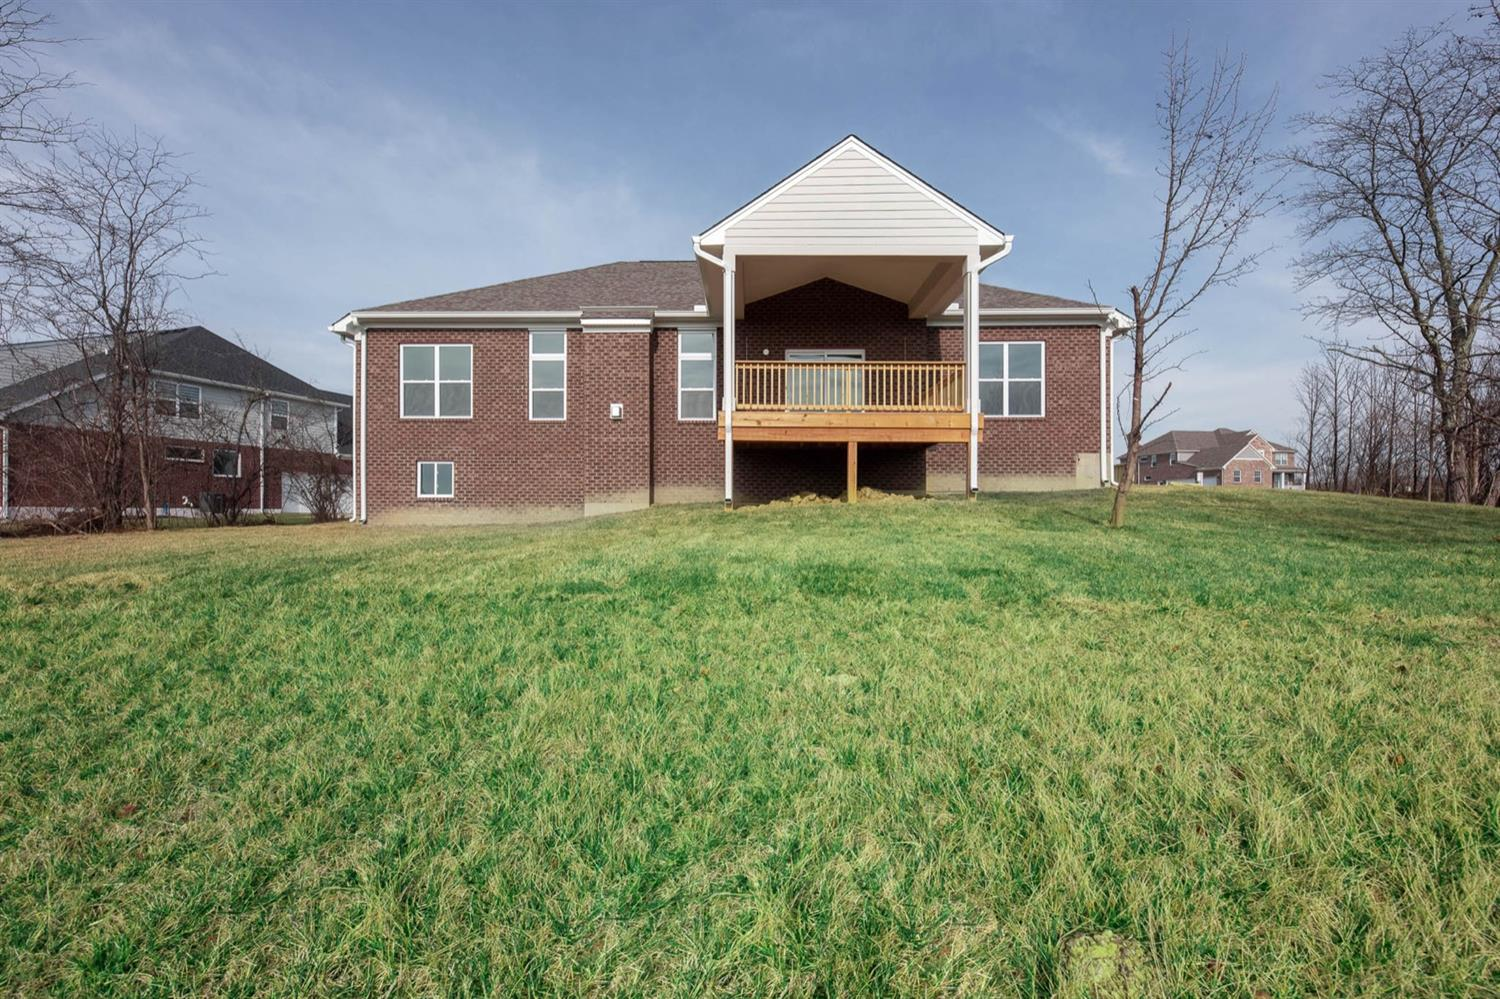 Photo 2 for 7153 Highland Bluff Dr West Chester - East, OH 45069